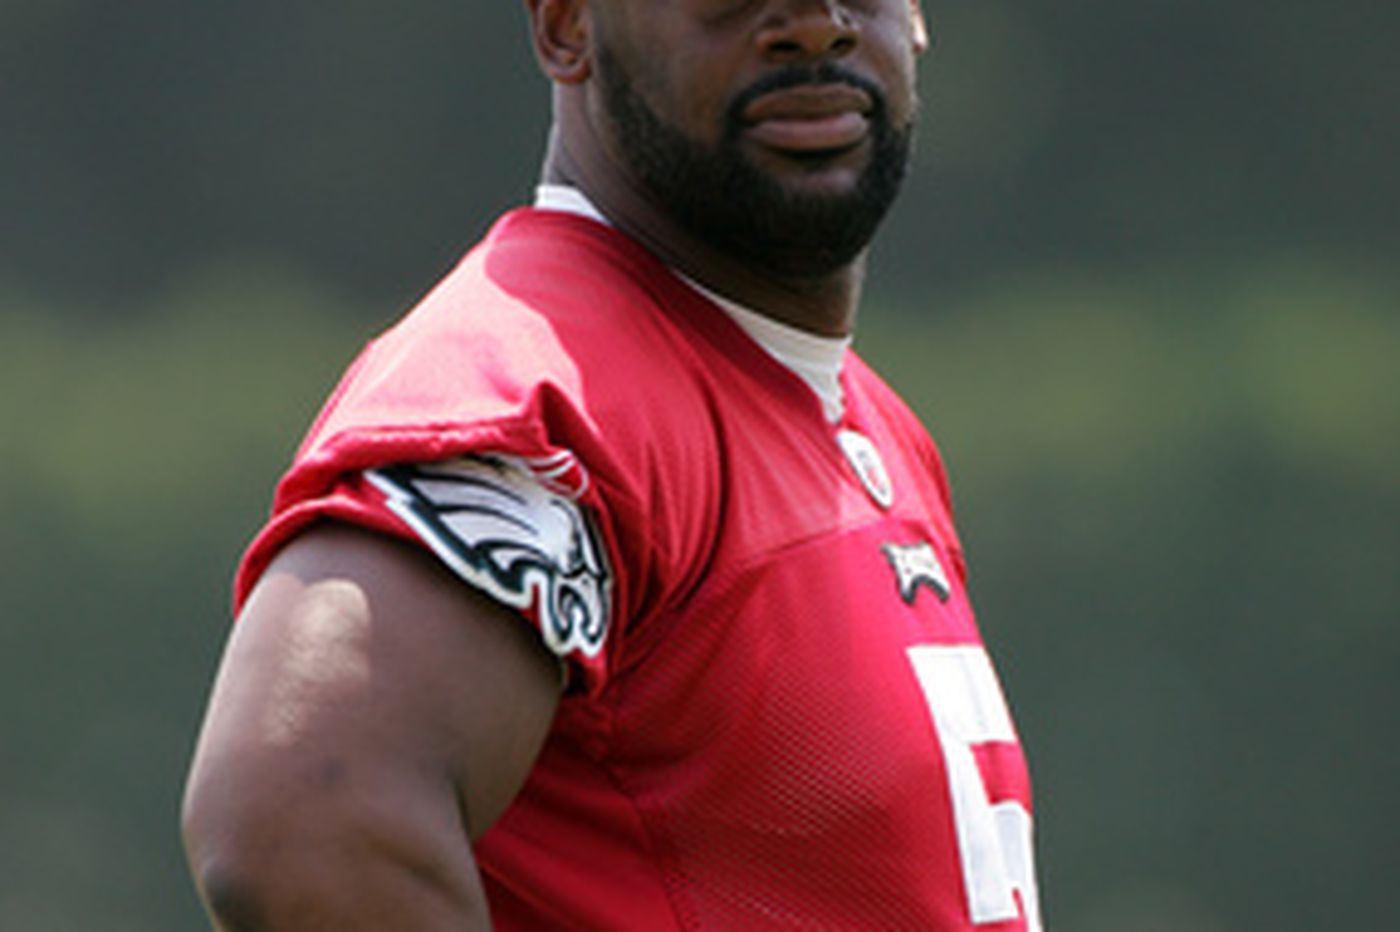 McNabb sidelined by tendinitis